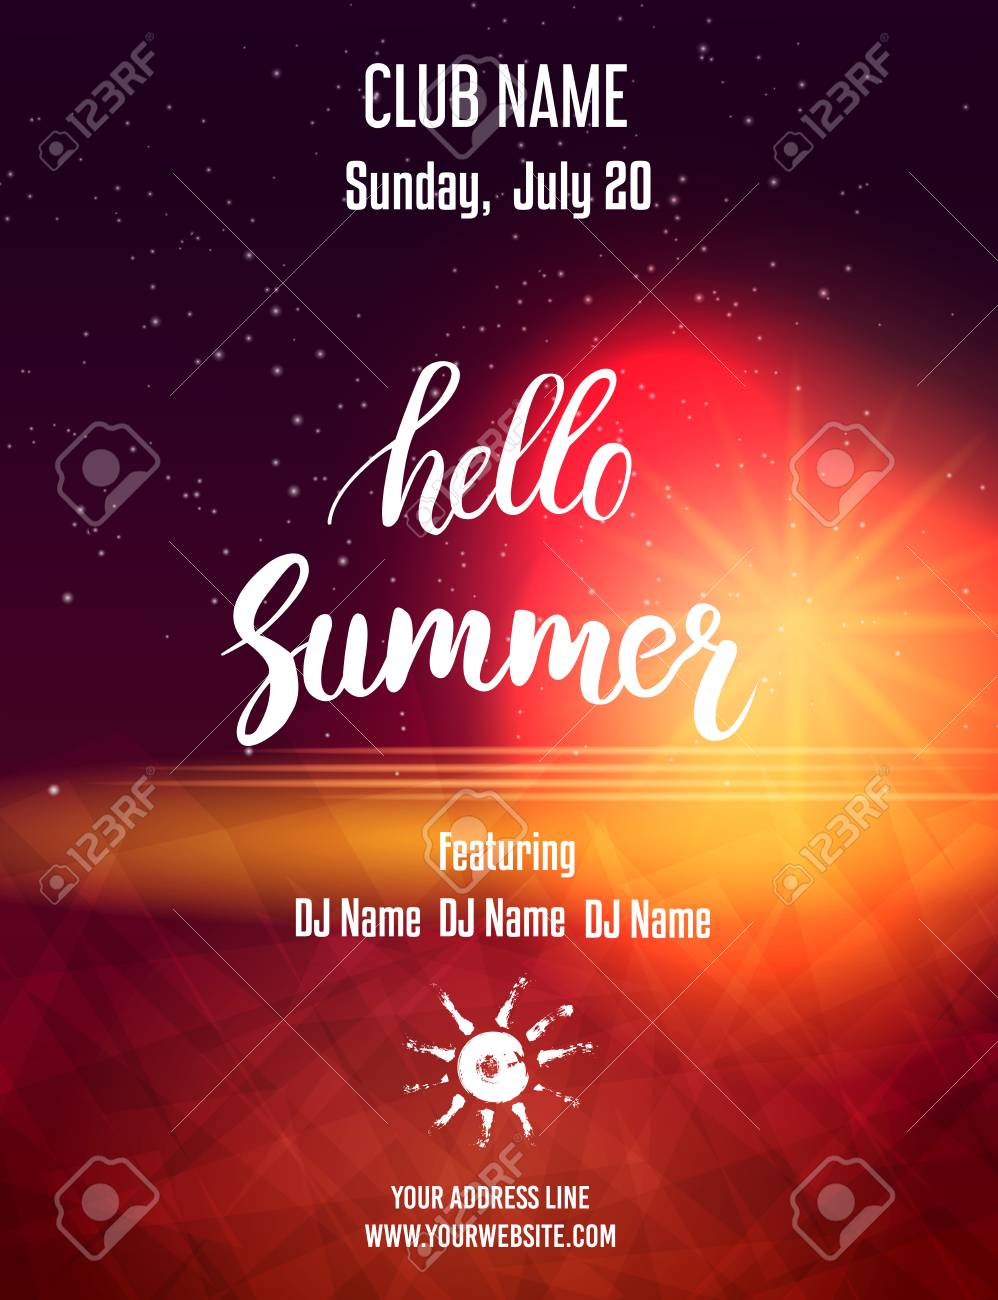 Hello Summer Party Poster Template Abstract Design Vector Illustration Stock